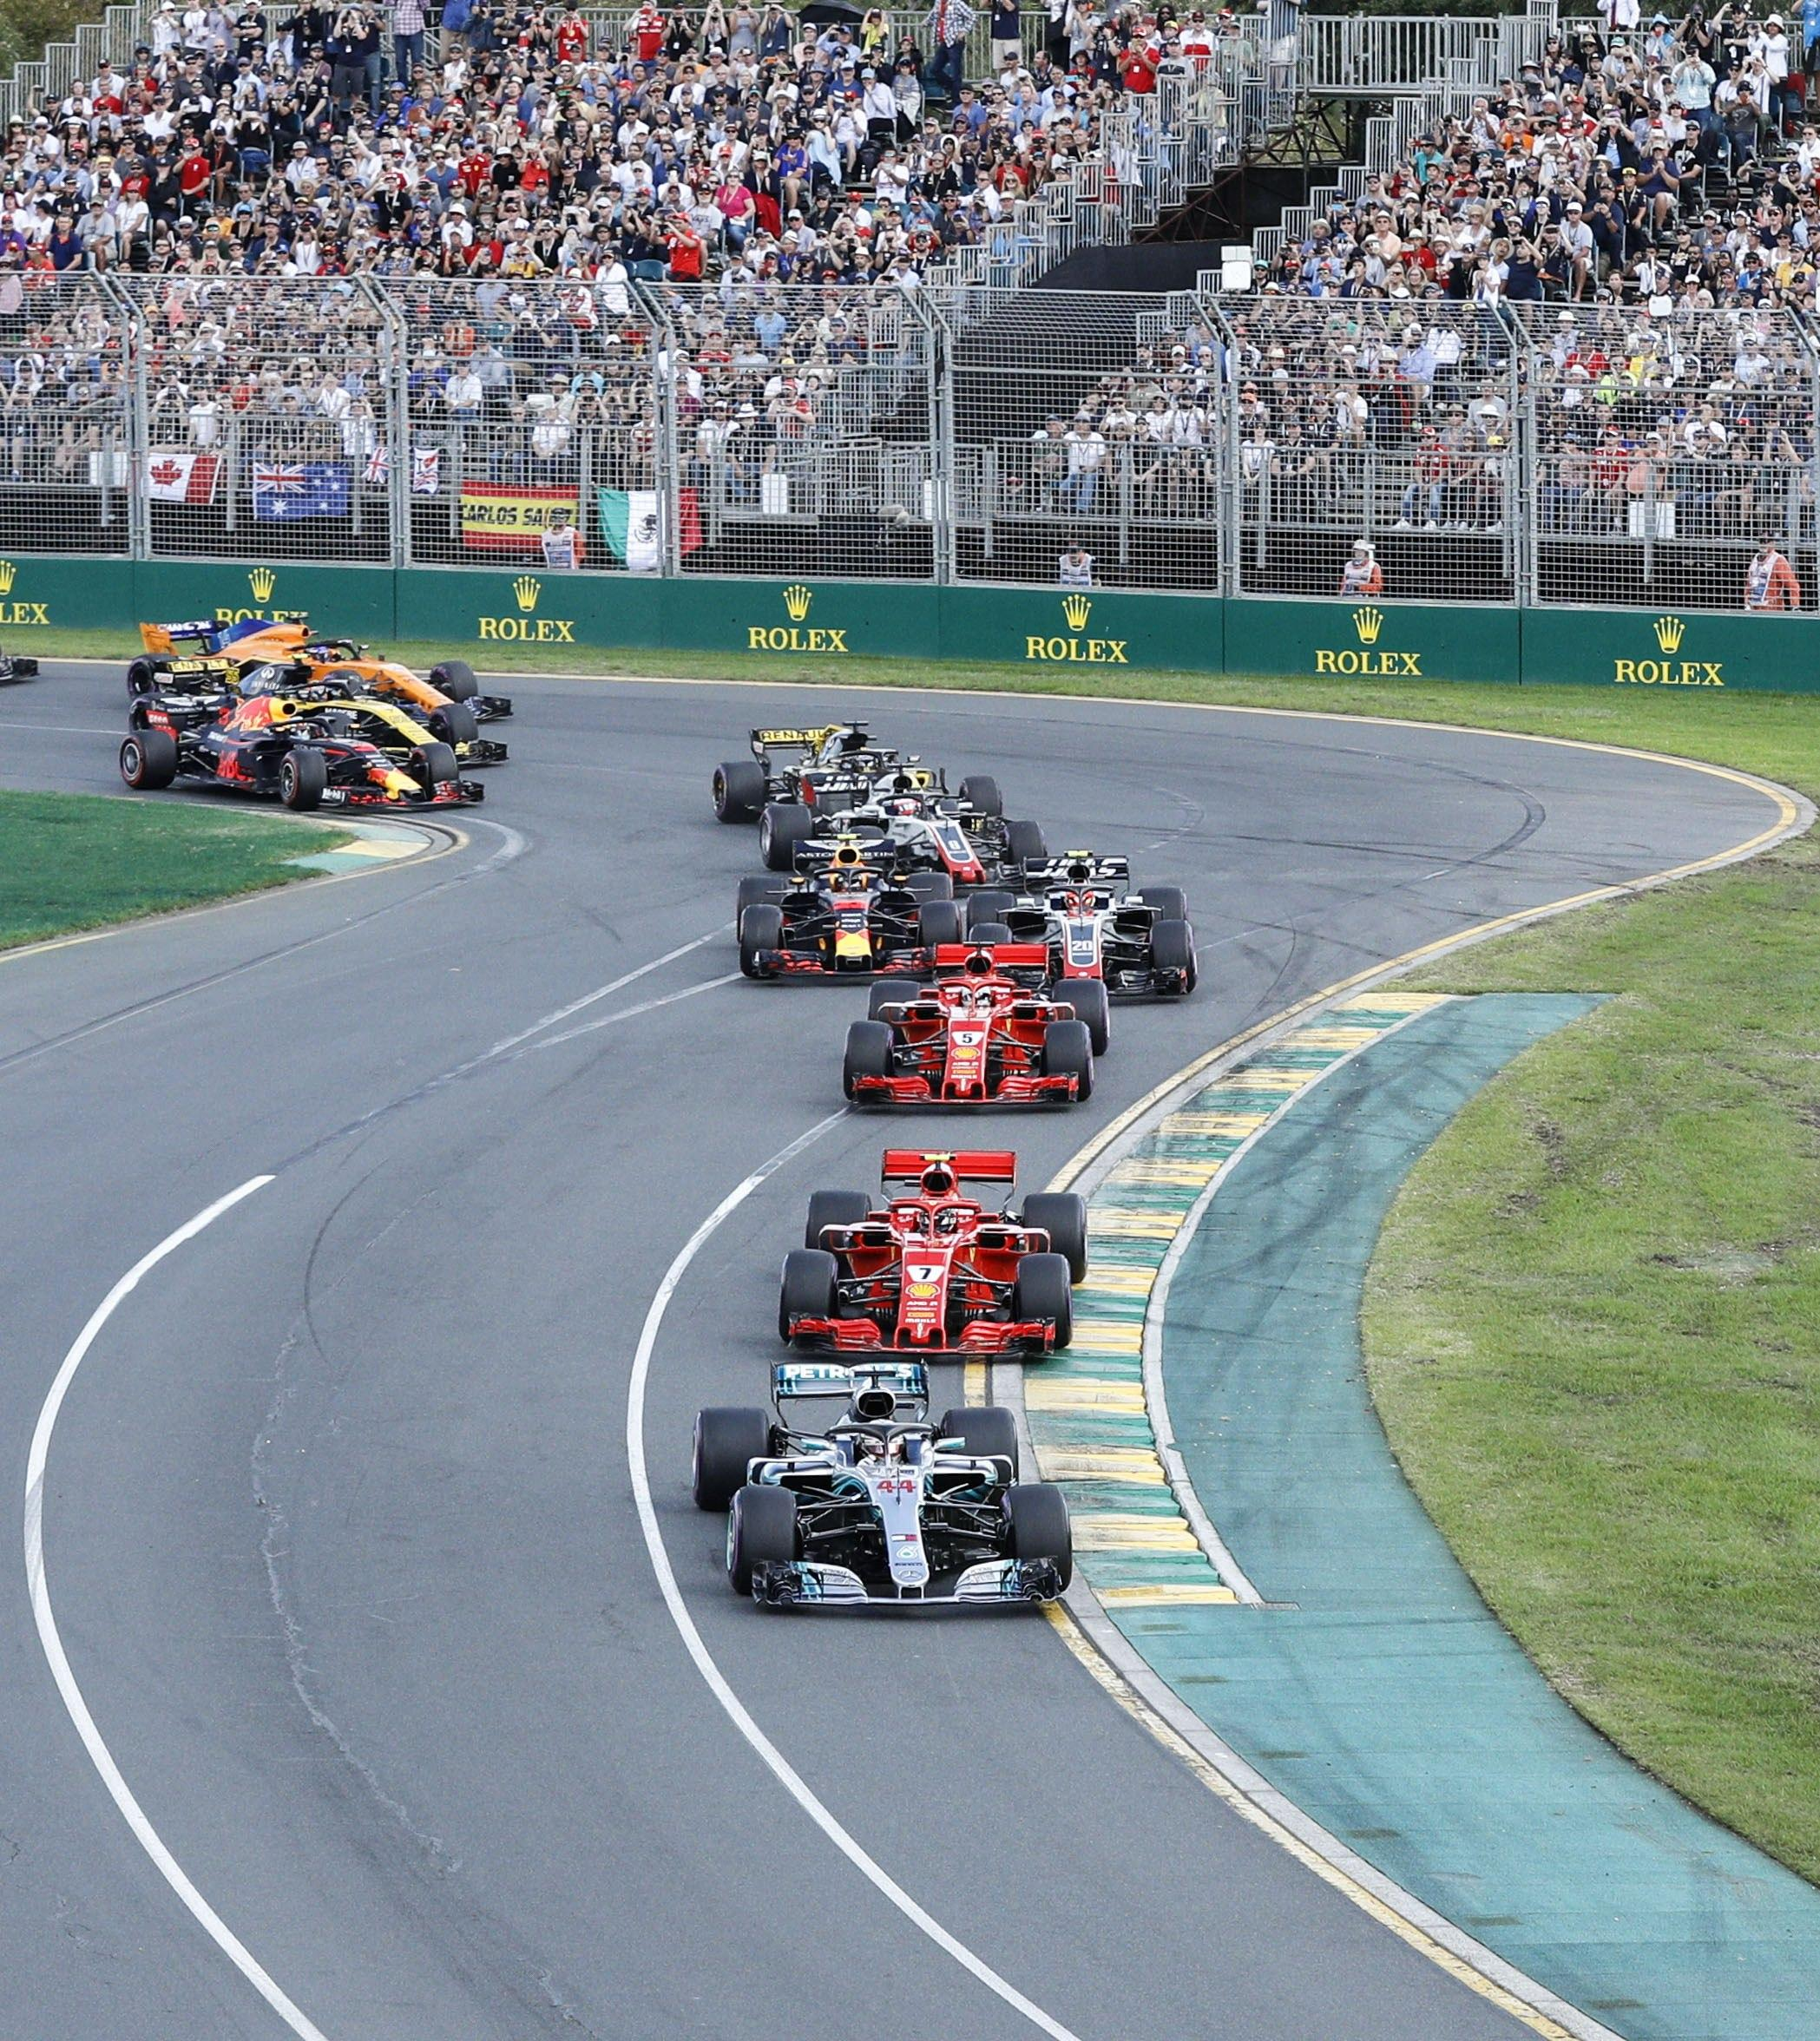 Lewis Hamilton led for the first 26 laps of the race before heading for the pit-stop